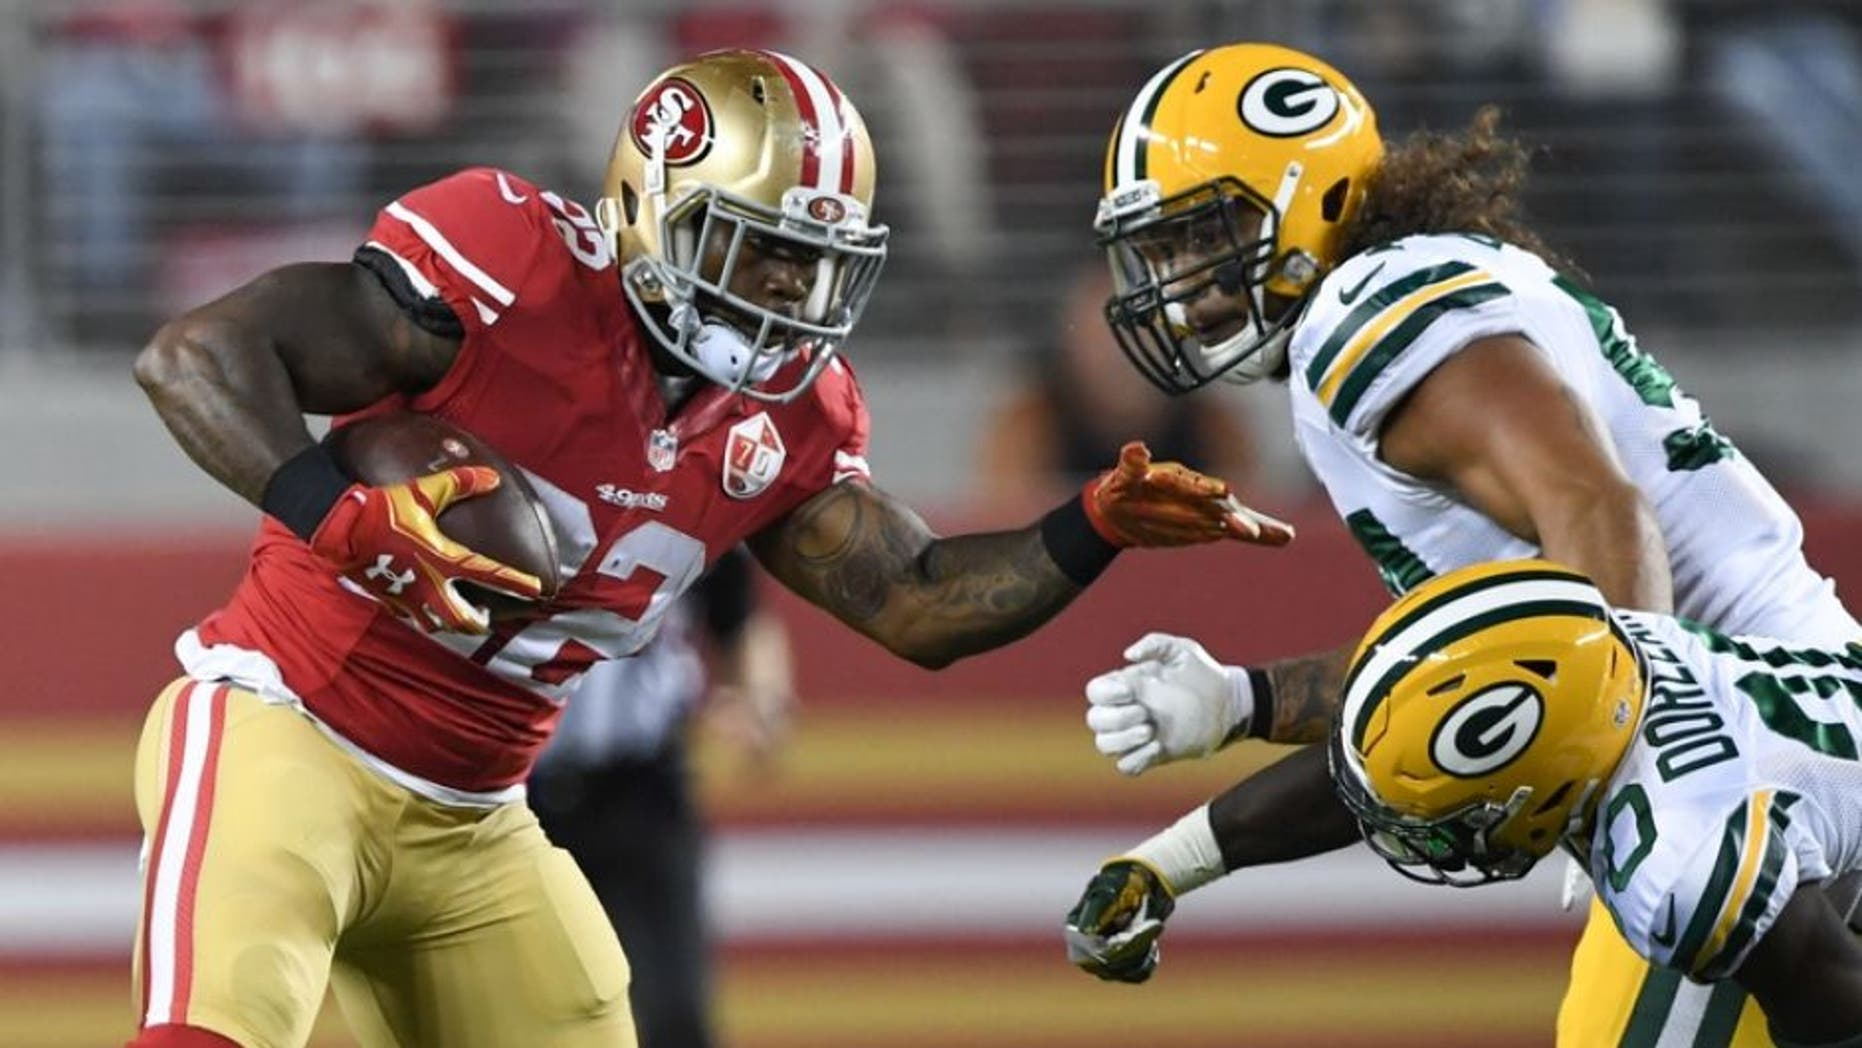 August 26, 2016; Santa Clara, CA, USA; San Francisco 49ers running back Mike Davis (22, left) runs the football against Green Bay Packers defensive back Makinton Dorleant (20) during the third quarter at Levi's Stadium. Mandatory Credit: Kyle Terada-USA TODAY Sports